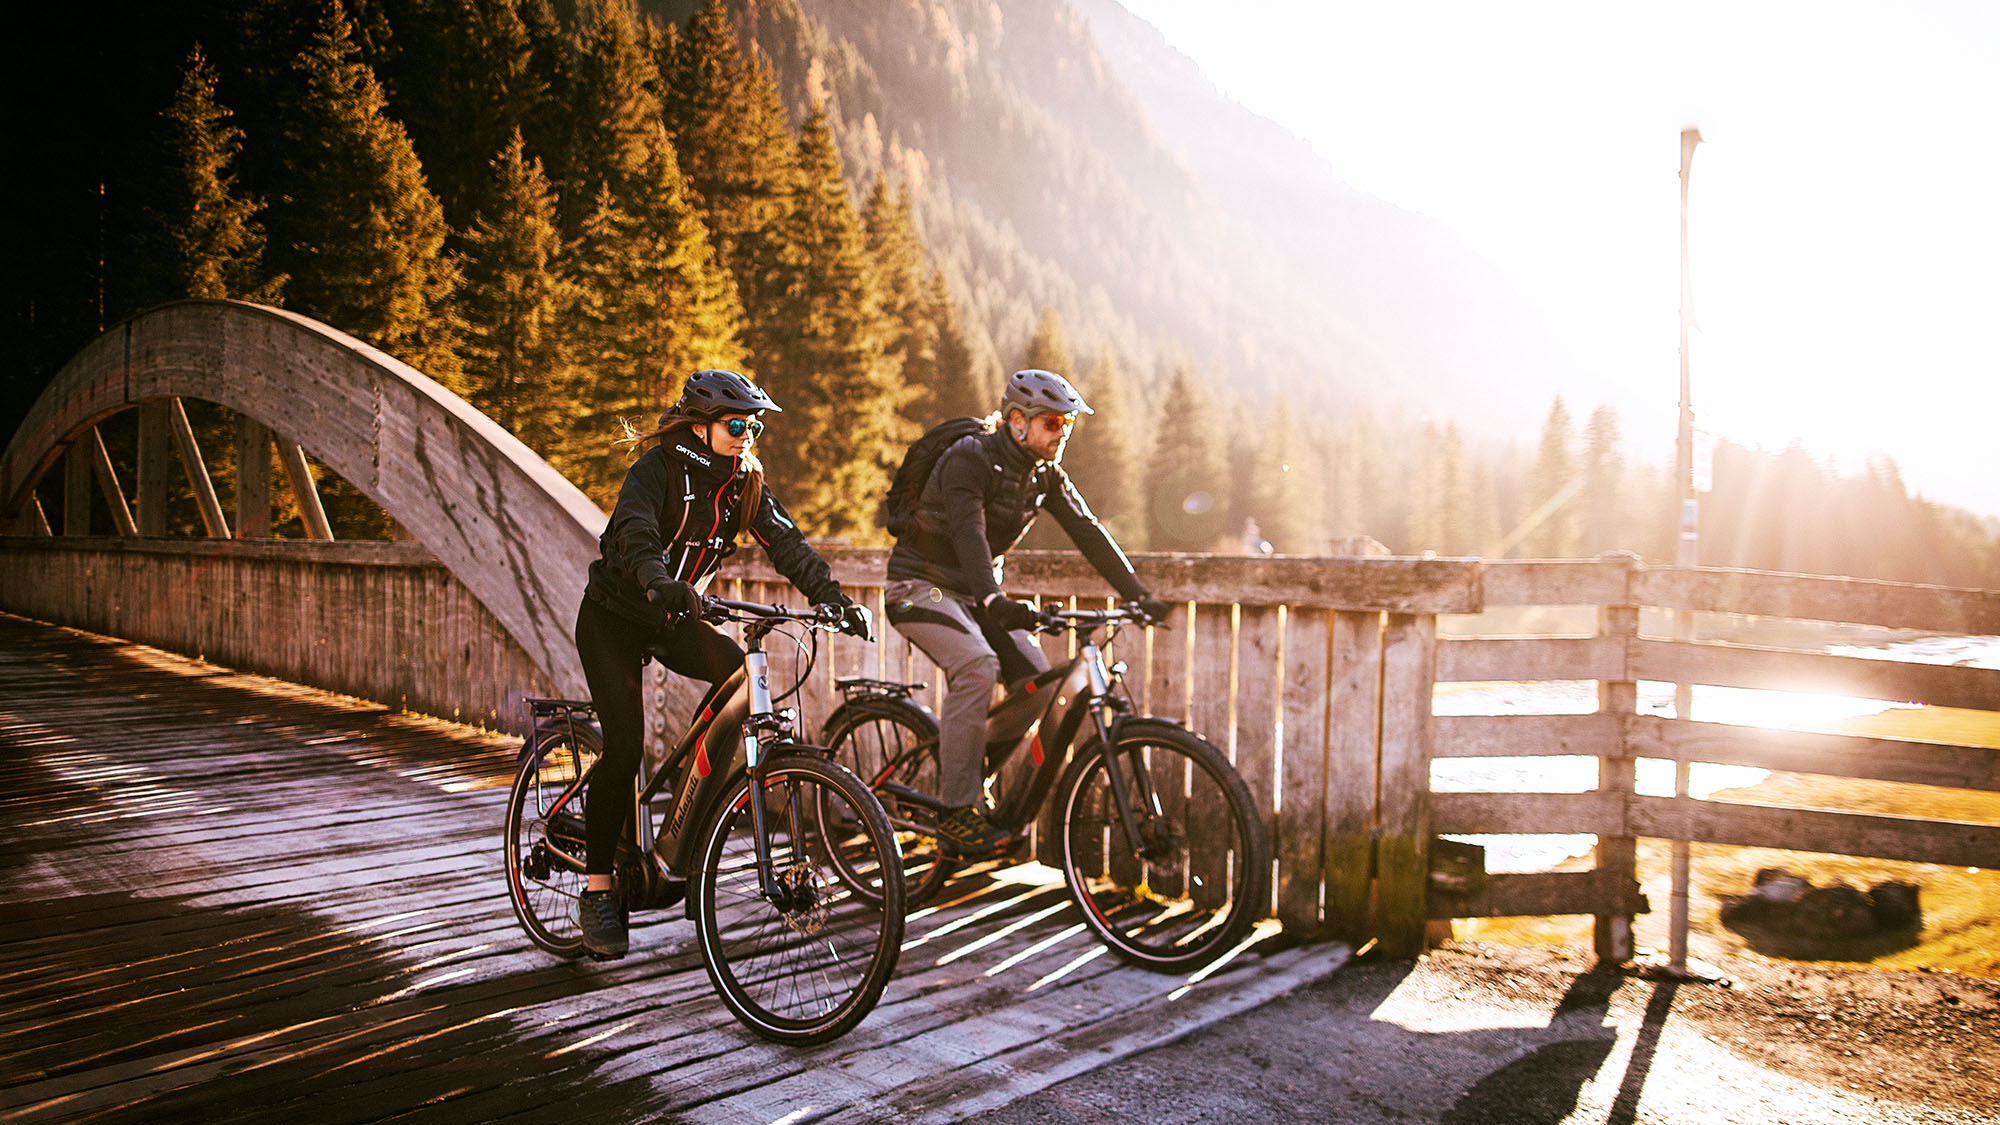 https://malaguti-bicycles.com/wp-content/uploads/sites/2/2020/11/MALAGUTI20_CORTINACAREZZA_DOLOMITES_byADL-0764.jpg